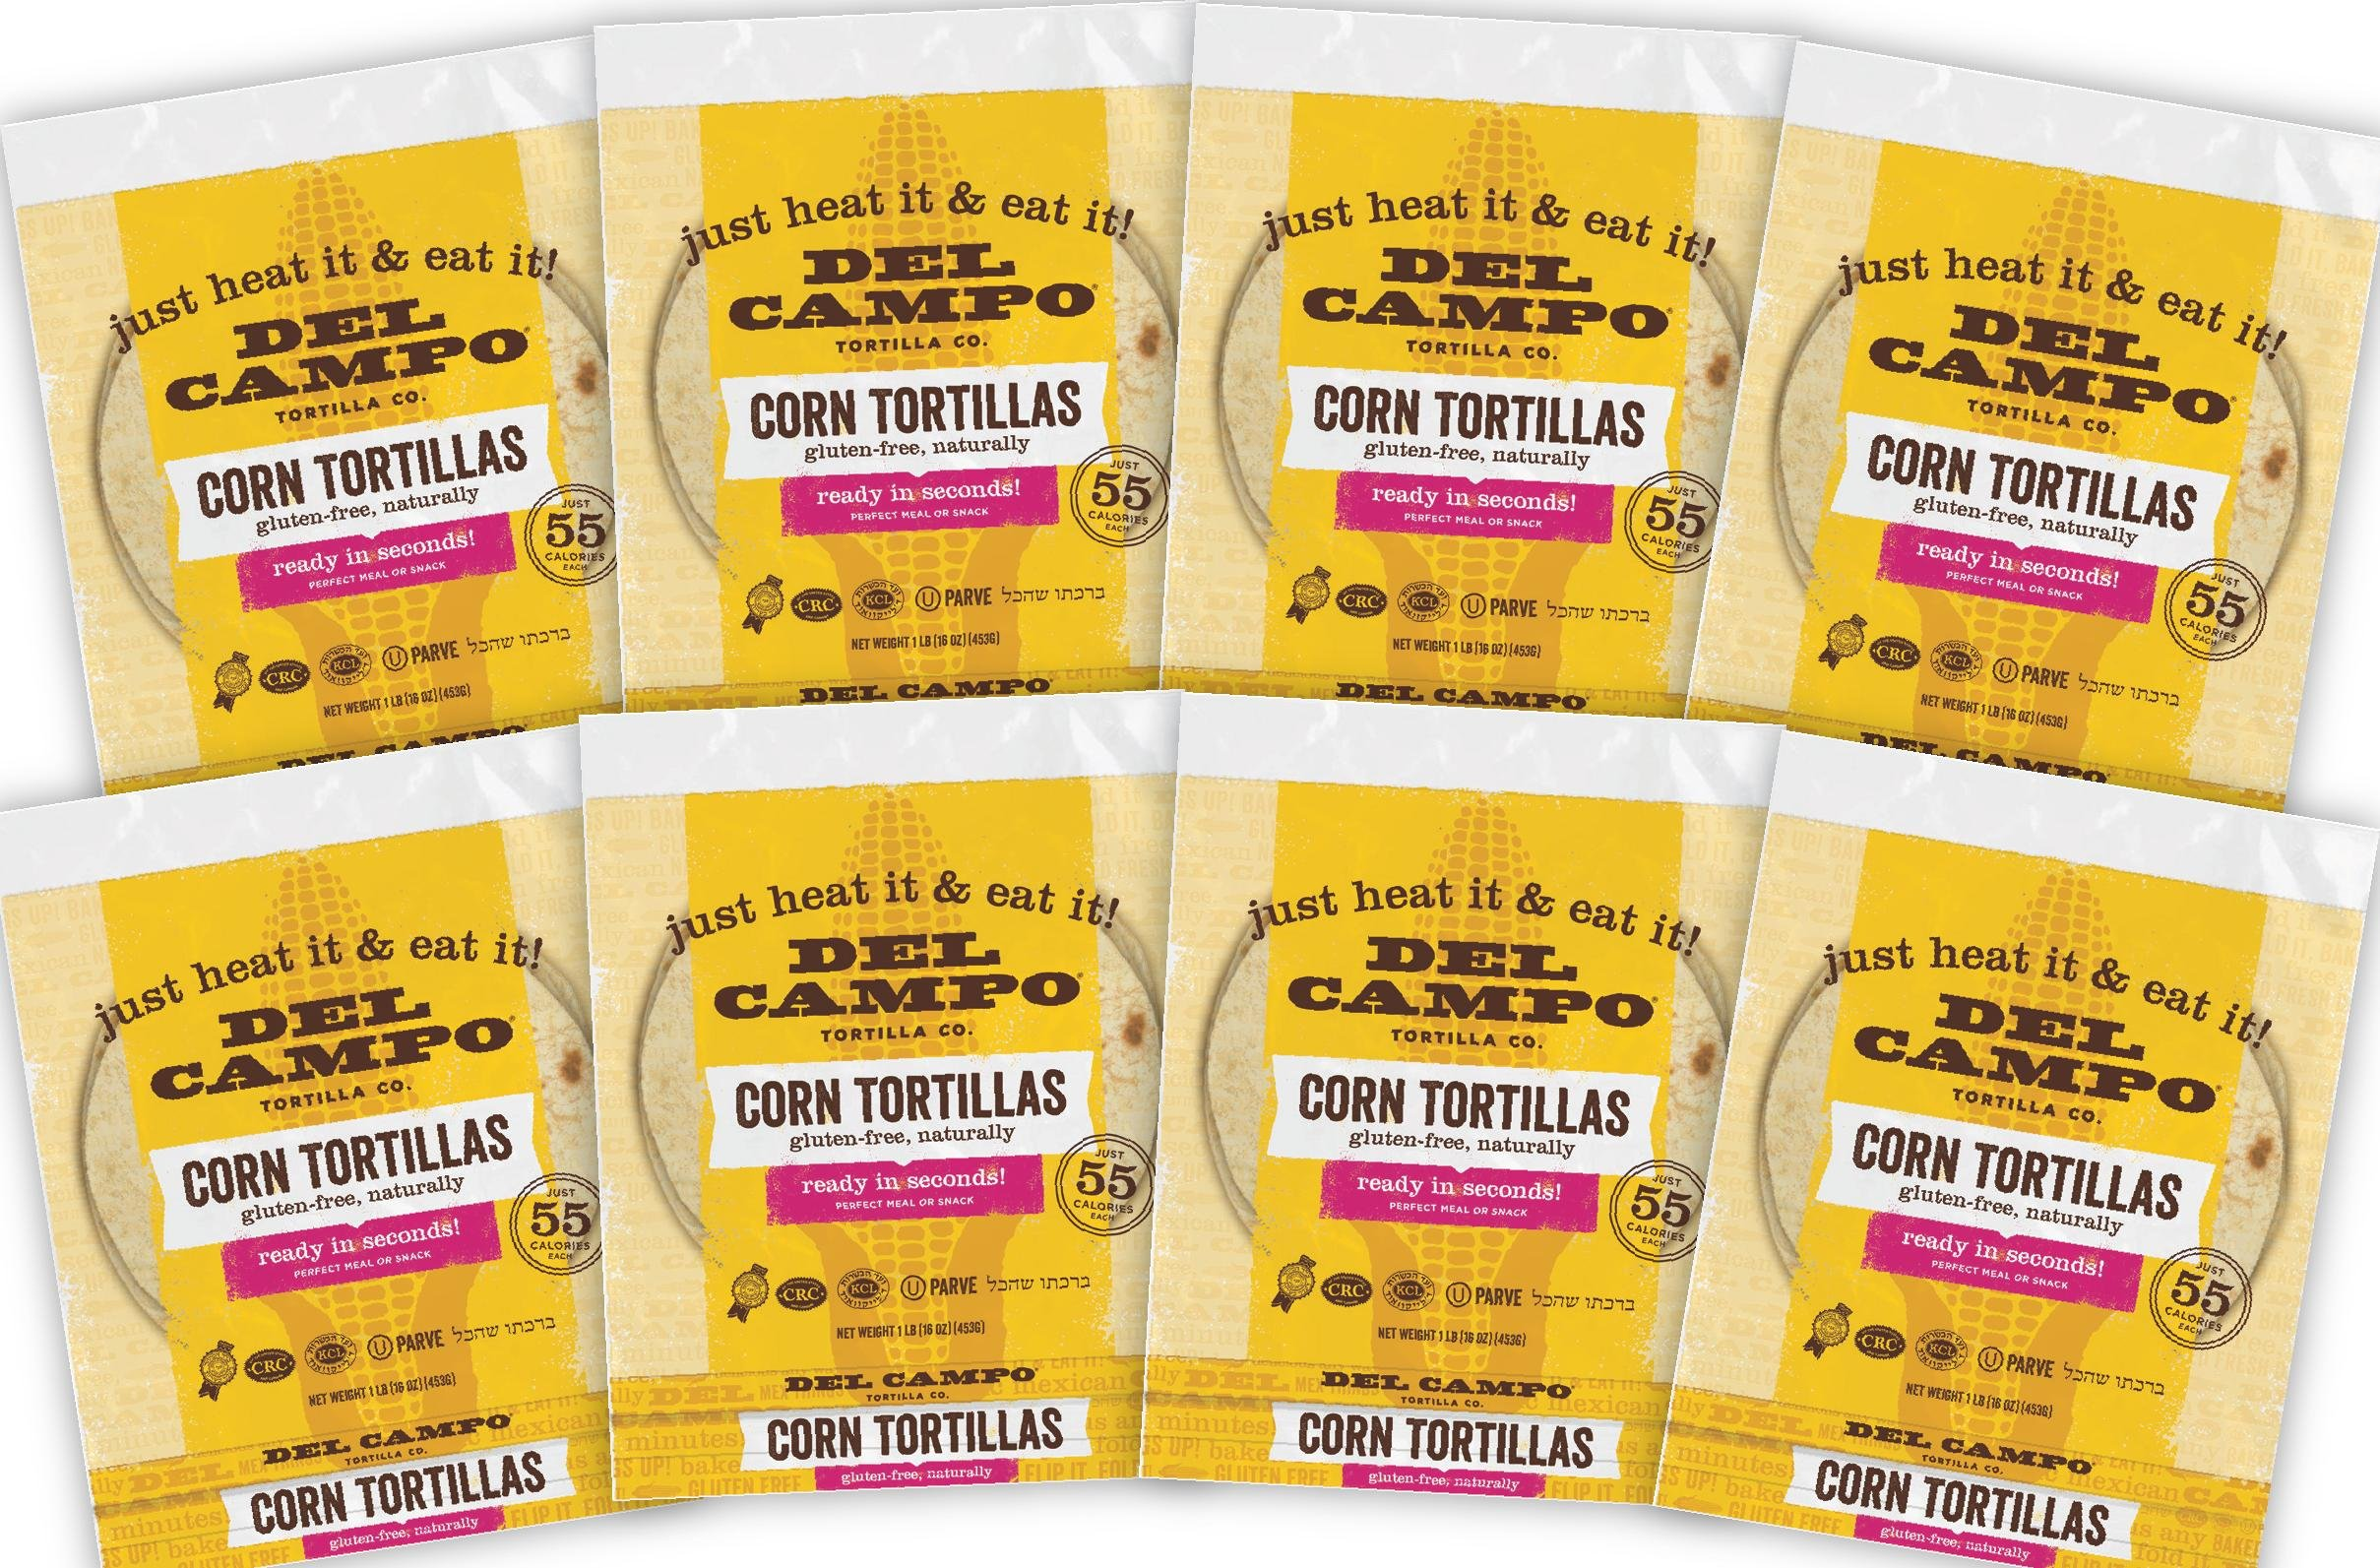 Del Campo Soft Corn Tortillas - 6 Inch Round 1Lb. Bag. 100% Natural, Gluten Free and All-Corn Authentic Mexican Food. Many Serving Options: Wraps, Tacos, Quesadillas or Burritos, Kosher. (8lb Case) by Del Campo Tortillas